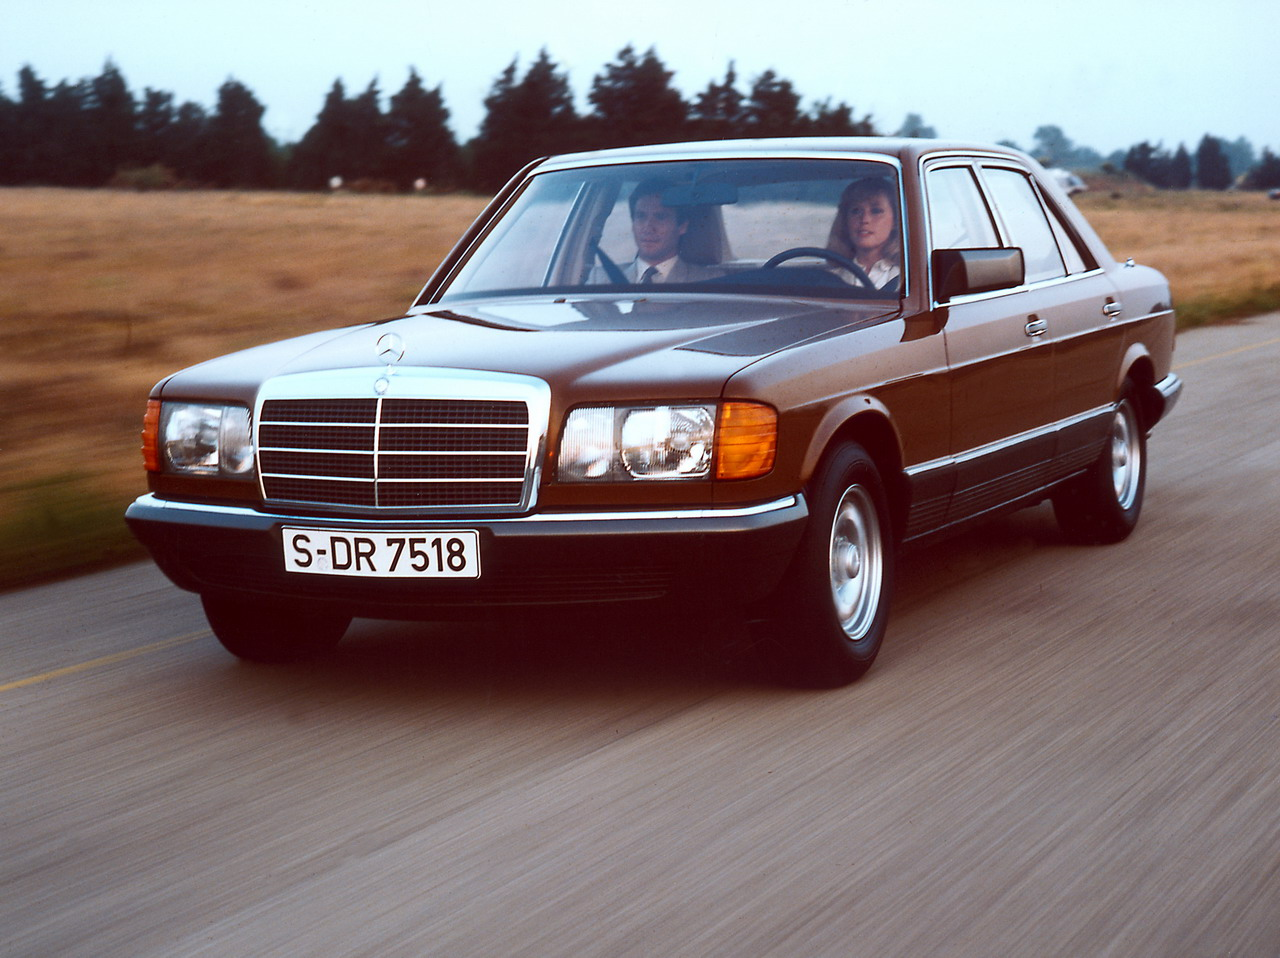 1983 mercedes benz s class information and photos for Mercedes benz 1983